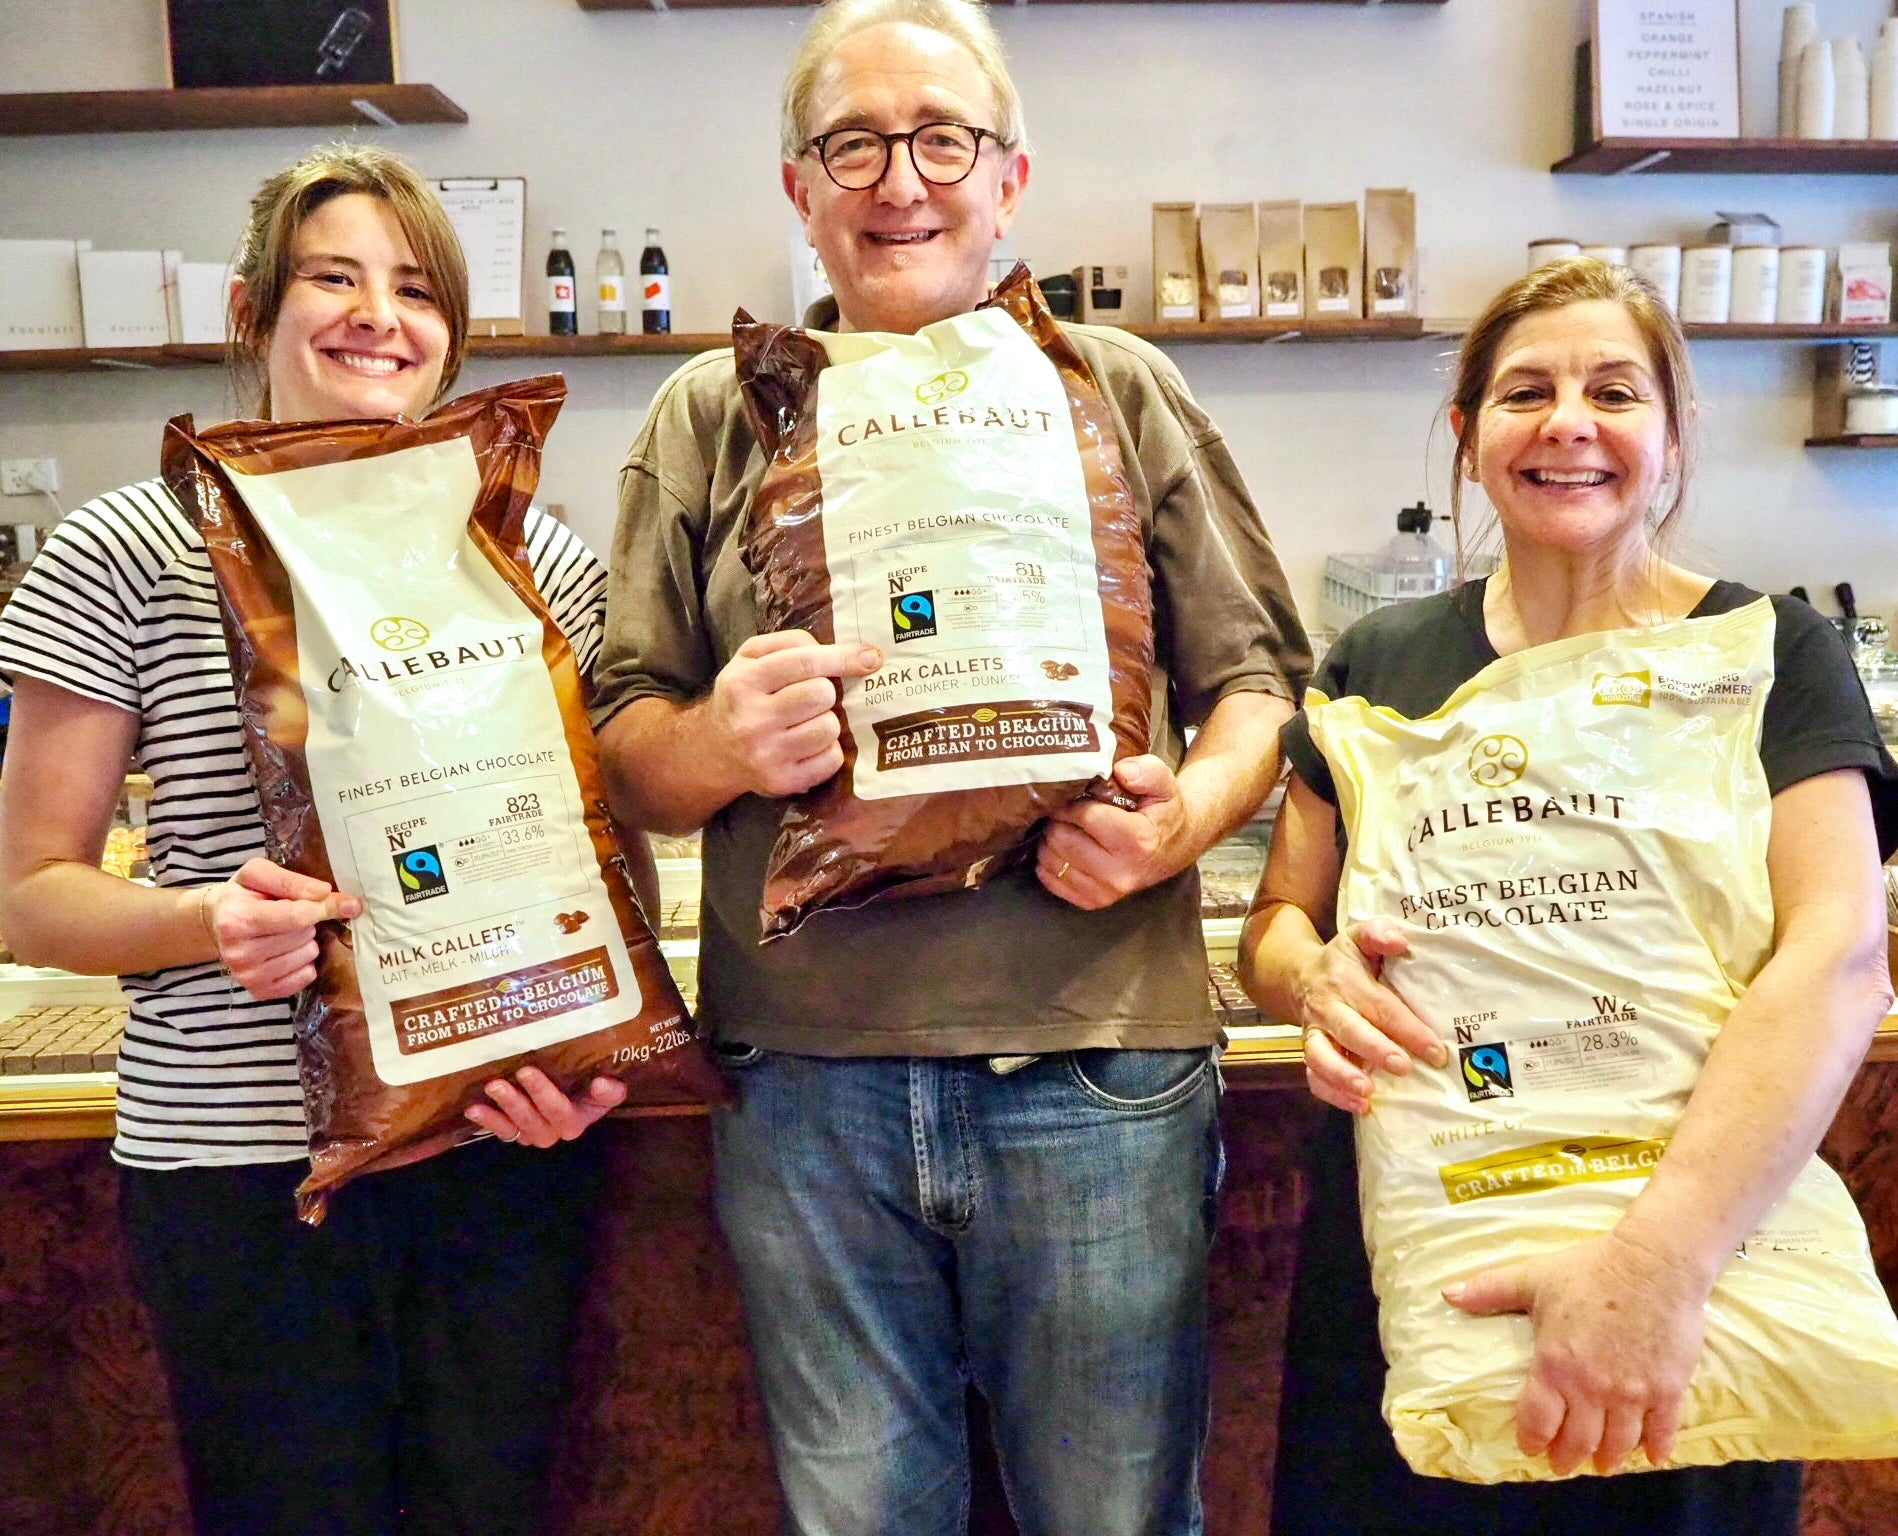 Helping to support an environmentally responsible and socially just world through chocolate and coffee